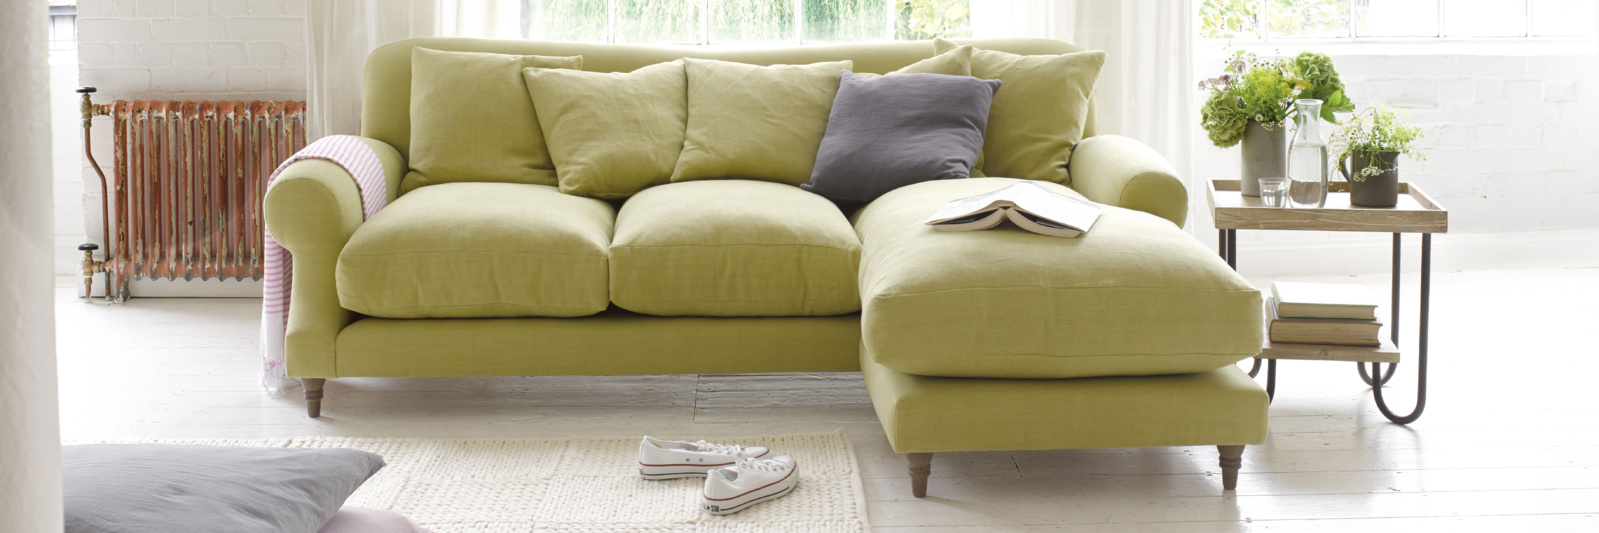 Green Crumpet scatterback chaise sofa